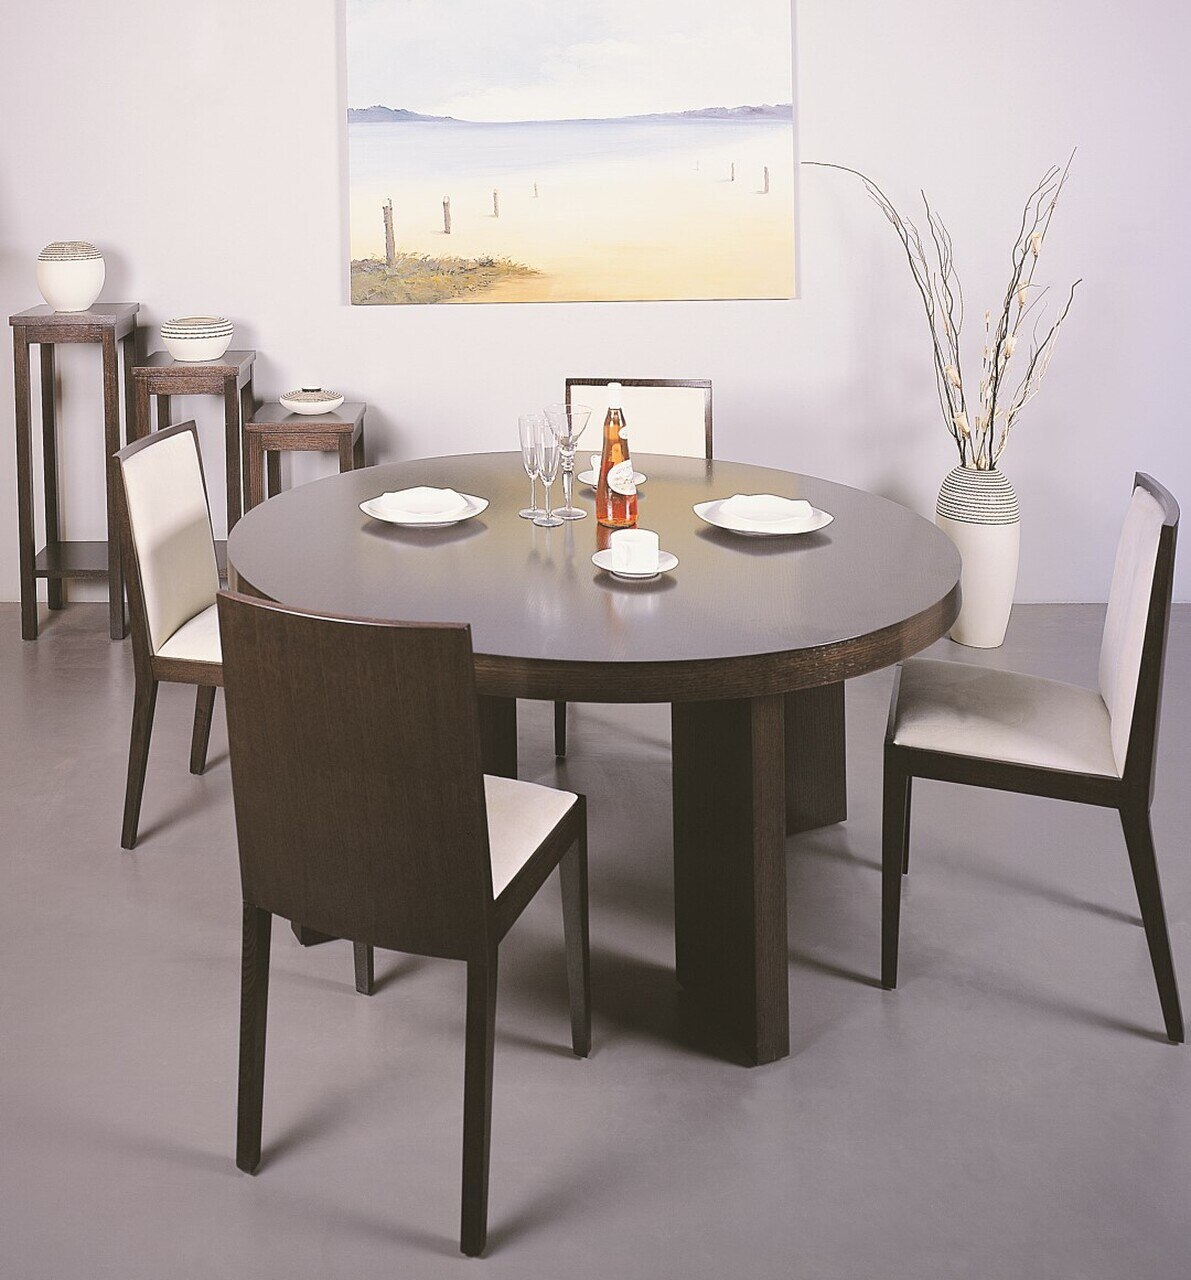 Luxury round wooden with microfiber seats modern dining for Expensive dining tables